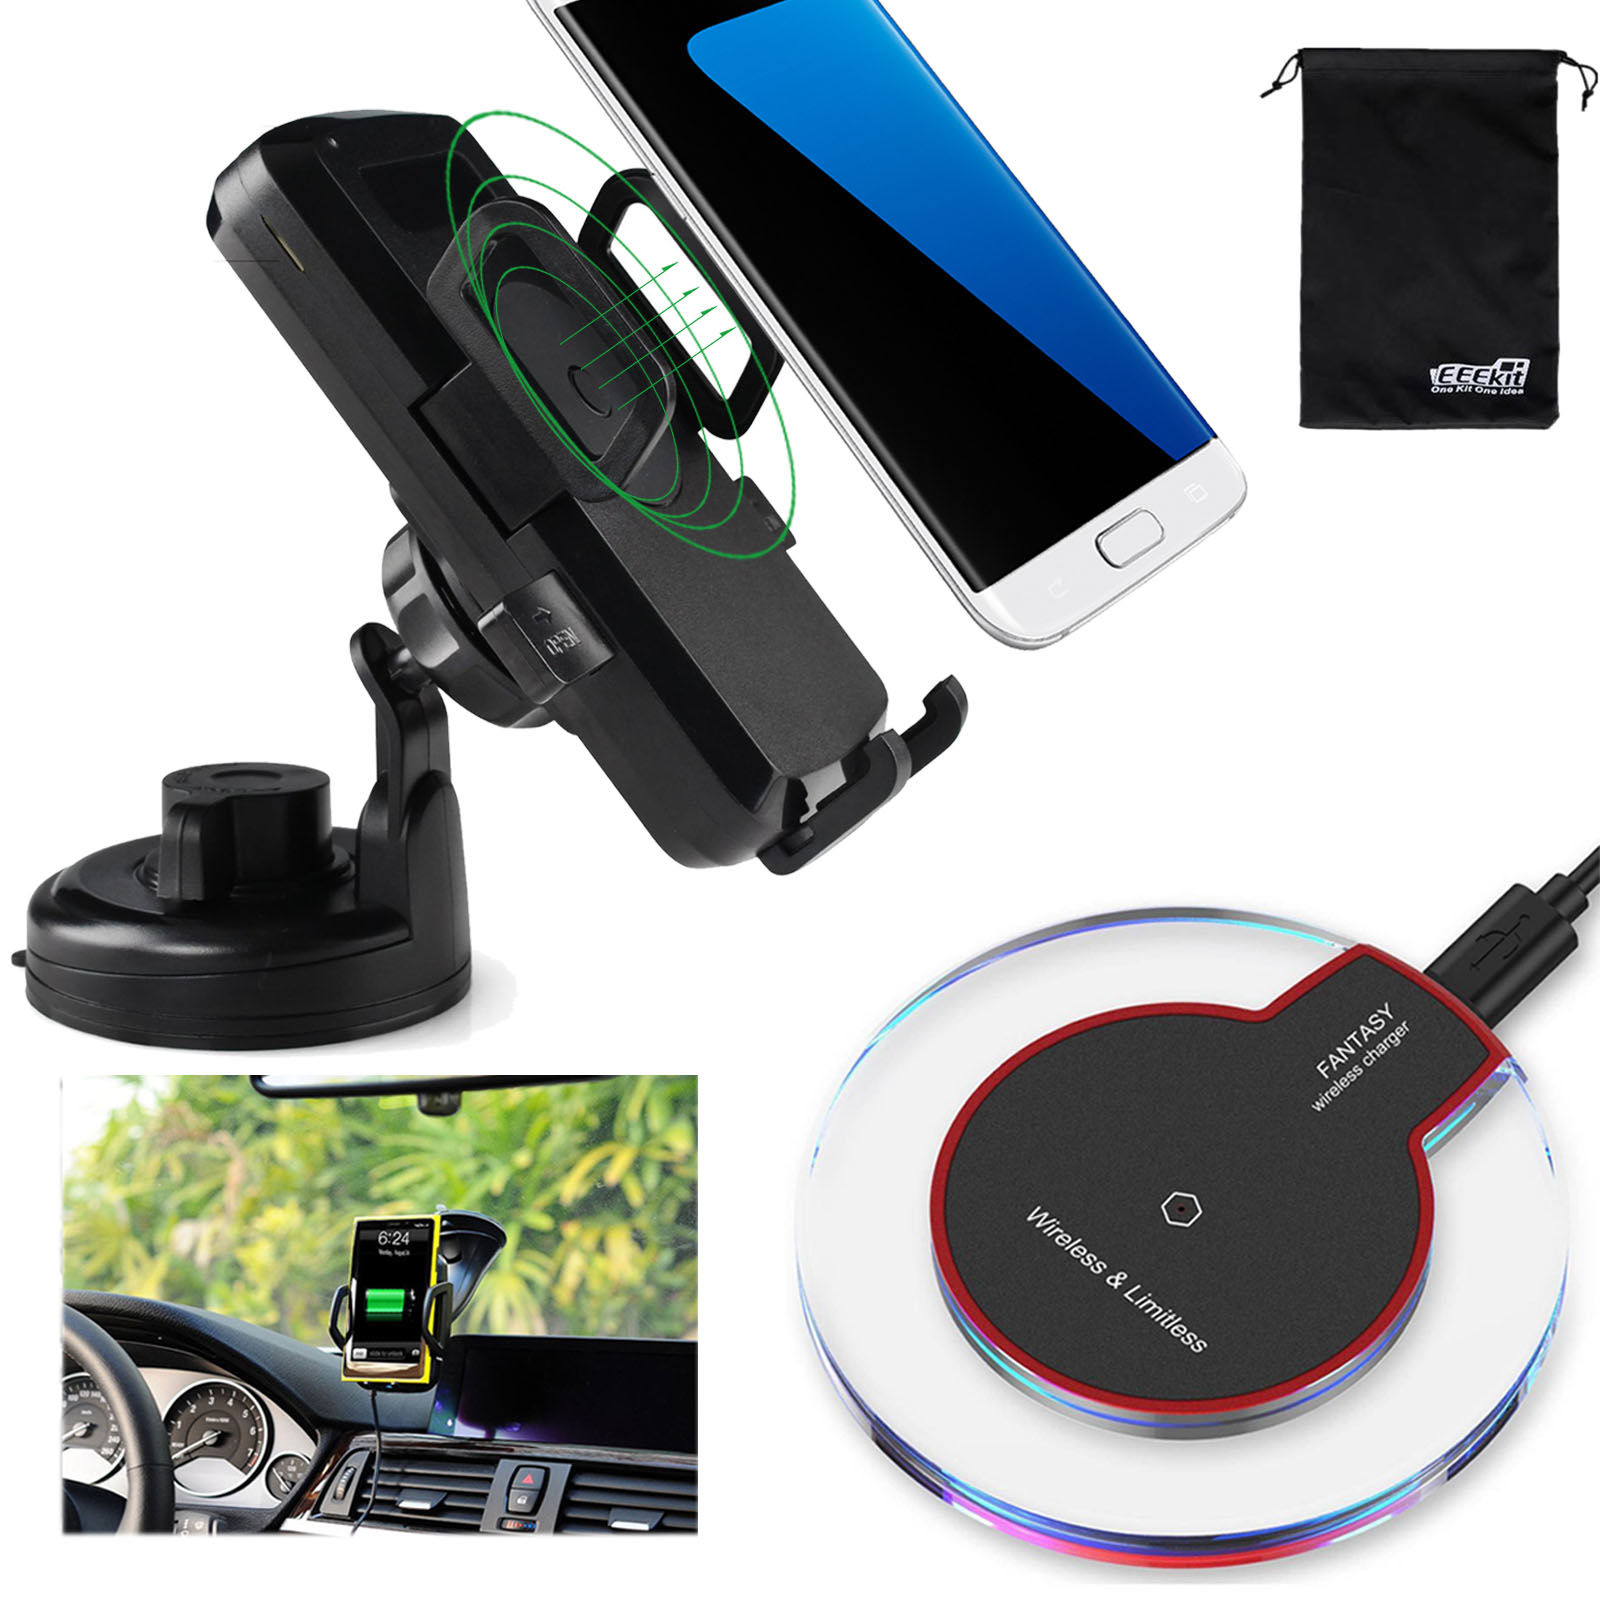 Qi Wireless Charging Car Mount+Wireless Charger Pad for Samsung Galaxy S9 S8 S7 S6 Edge /Plus Note 9 8 5, EEEKit 2in1 Kit